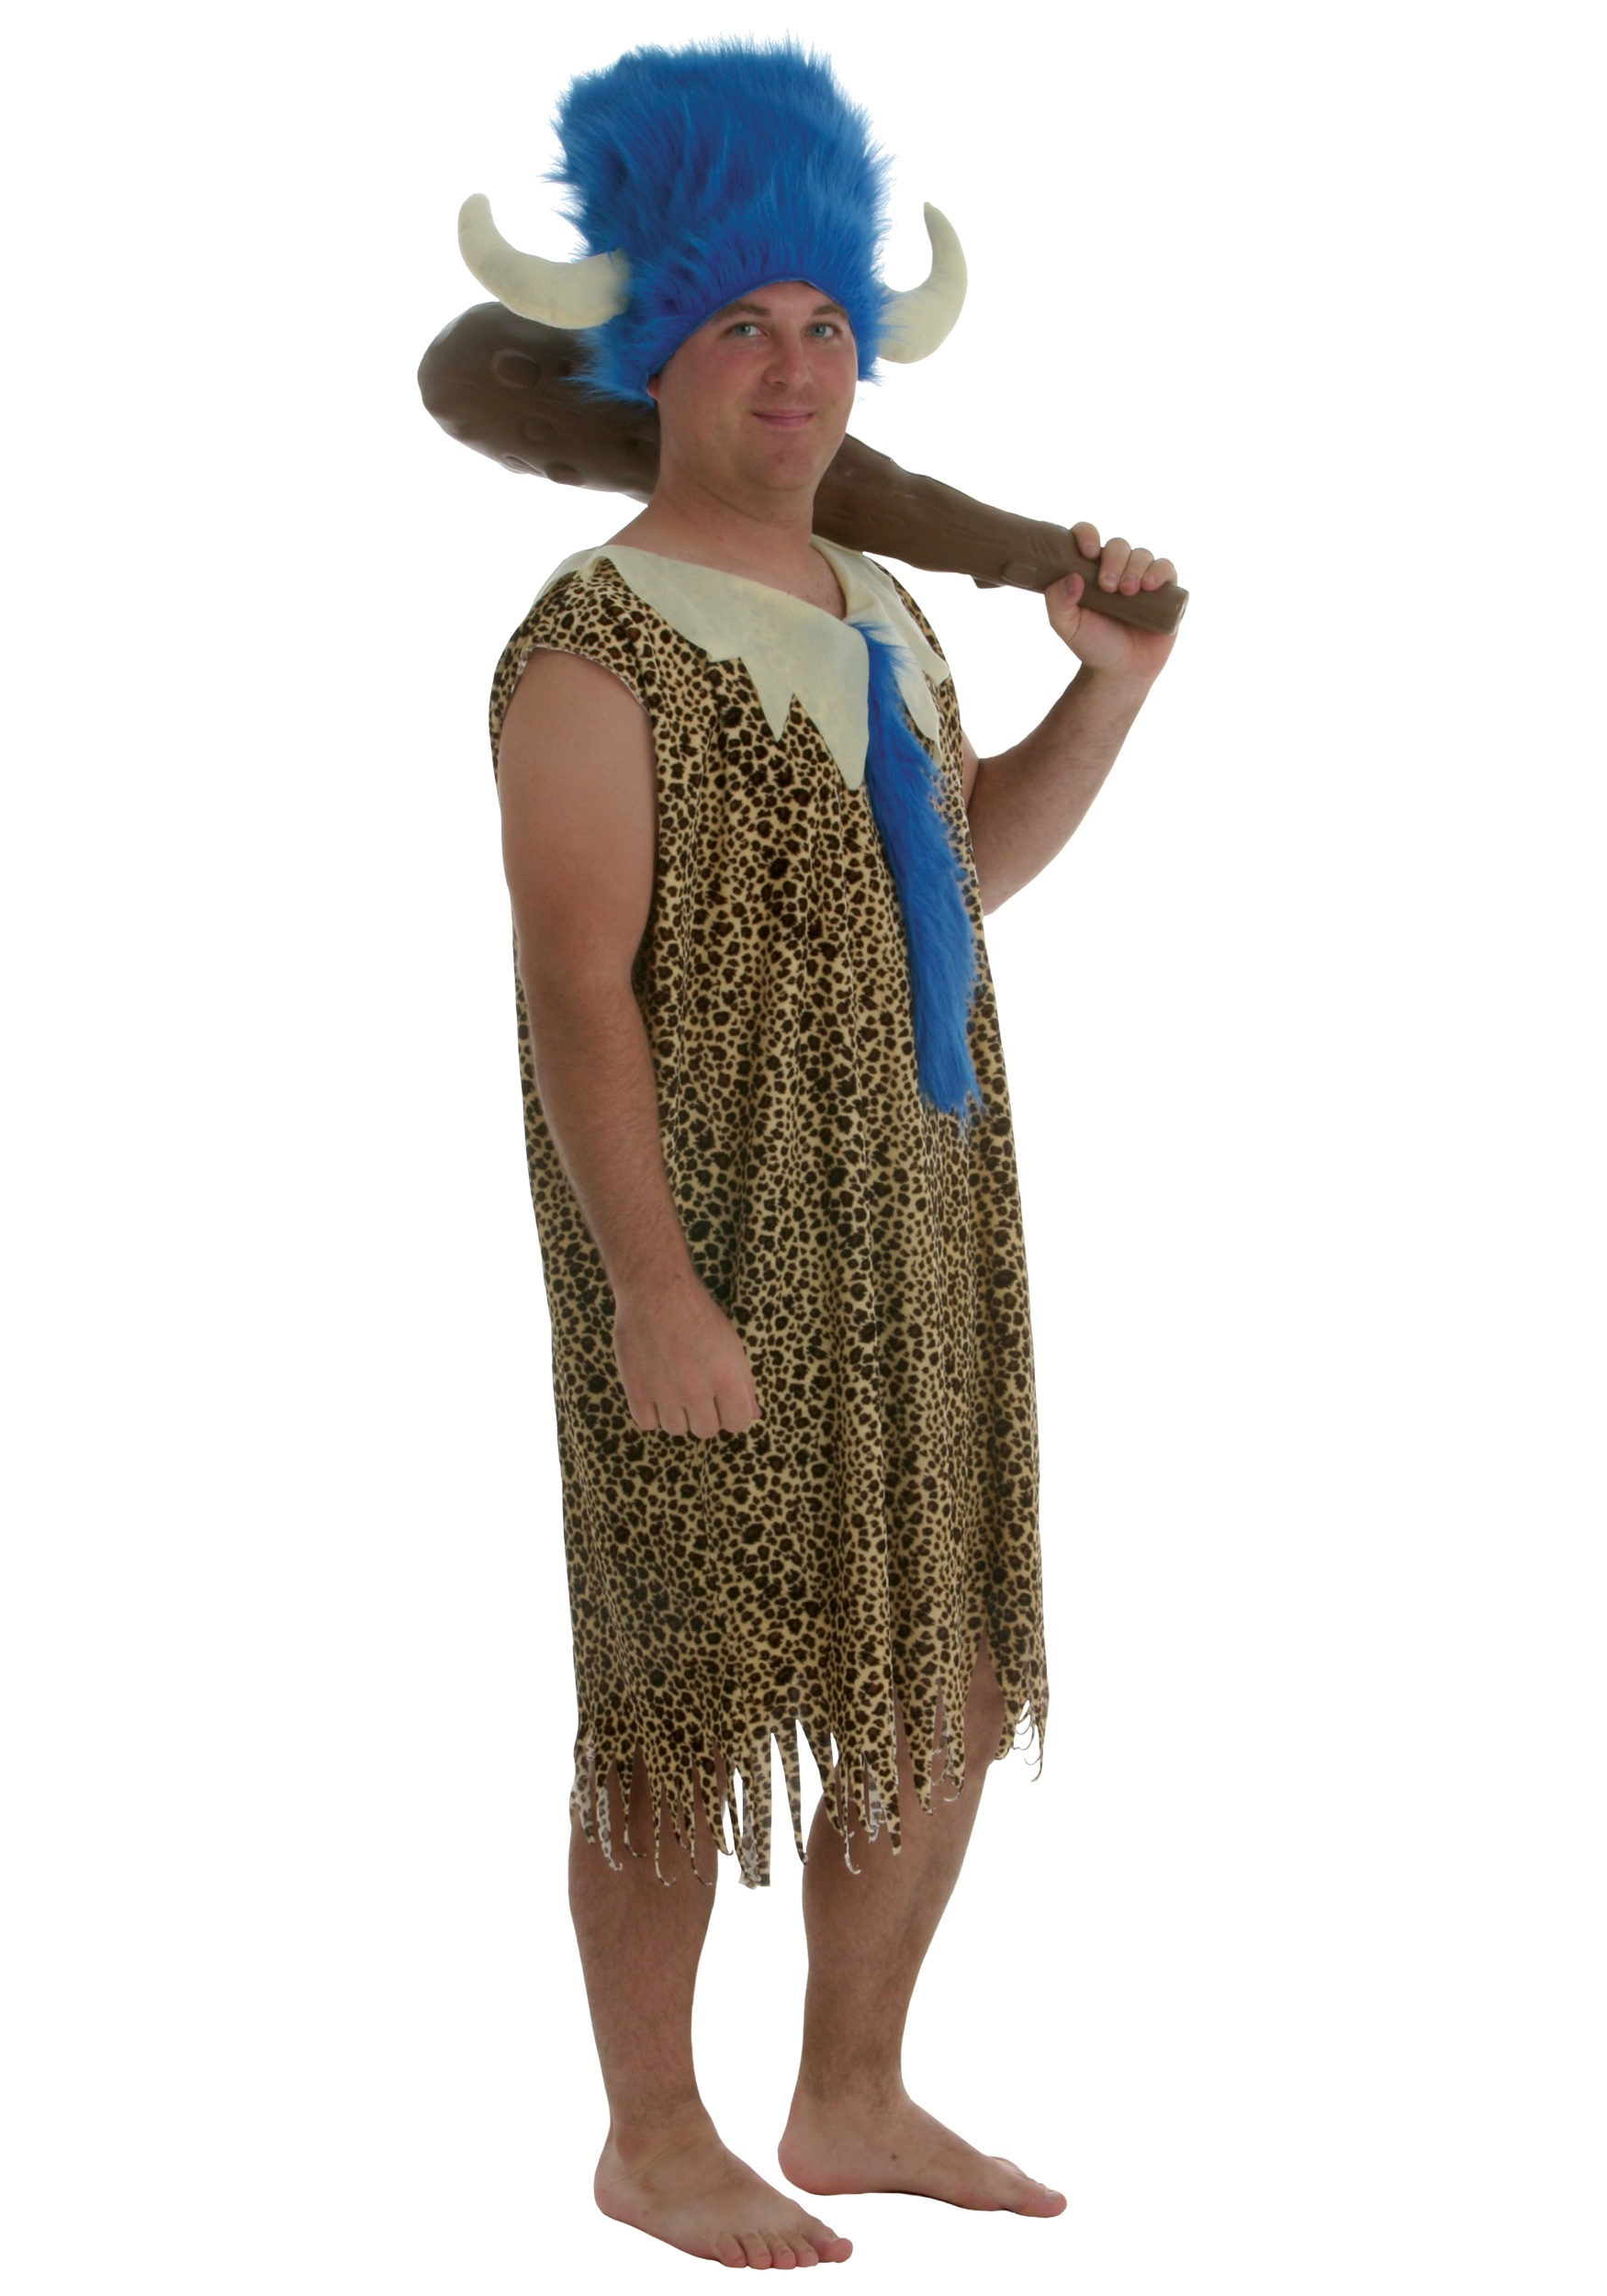 Lodge Man Adult Halloween Costume - Halloween Costume Ideas 2016